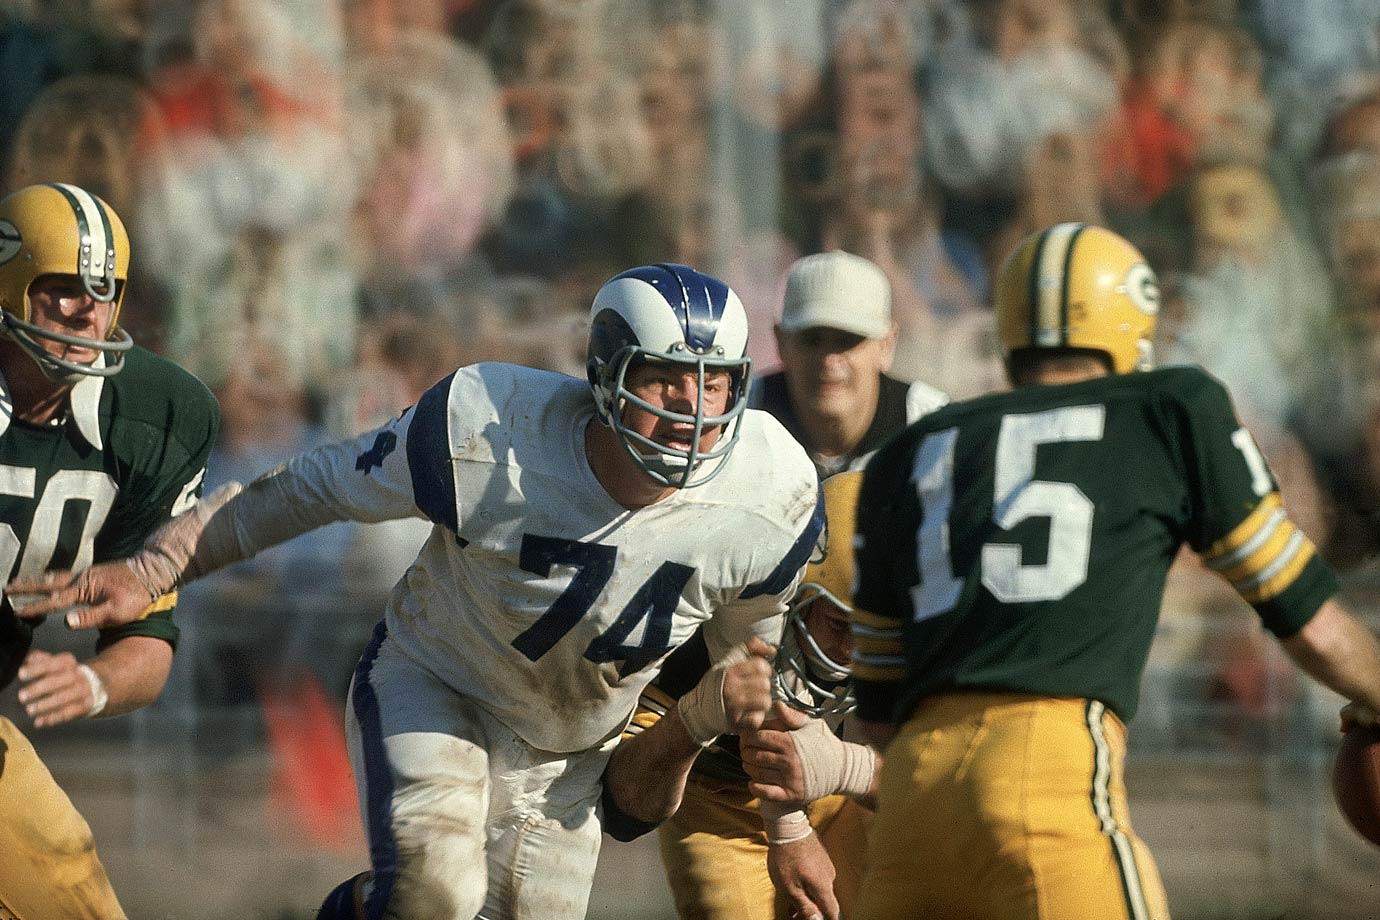 While Deacon Jones gets all the name-checks when people talk about the Rams' Fearsome Foursome front line, it's Olsen who was the greatest and most consistent player of the bunch. A 14-time Pro Bowler, Olsen brought the intelligence he used to get a degree in economics and develop a successful acting career to the field, and few could match his effectiveness. While all was chaos around him, Olsen would diagnose the offensive play and, more often than not, blow it up.